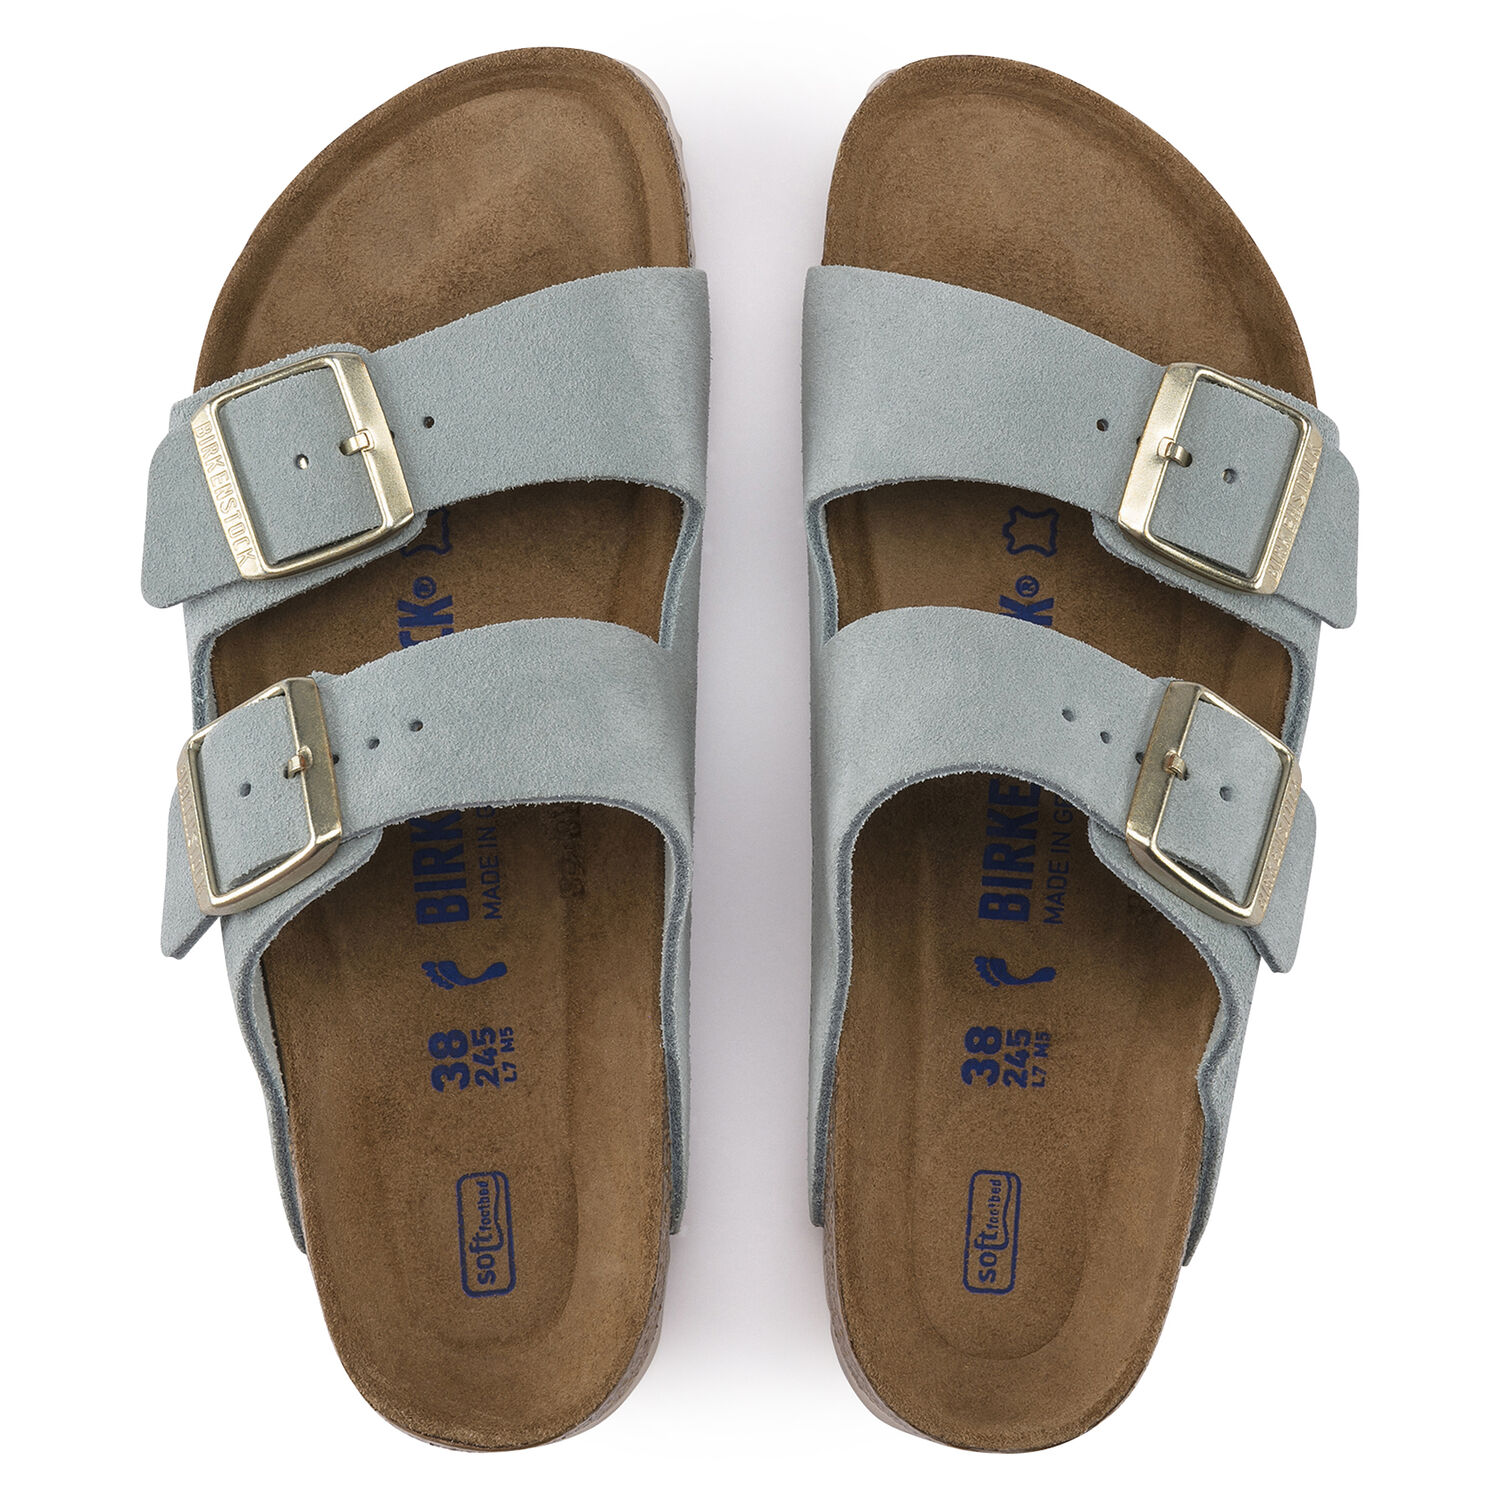 New Arrival!Arizona Soft Footbed Oil Leather Sandal (Buy 2 Get 10% OFF & Free Shipping)